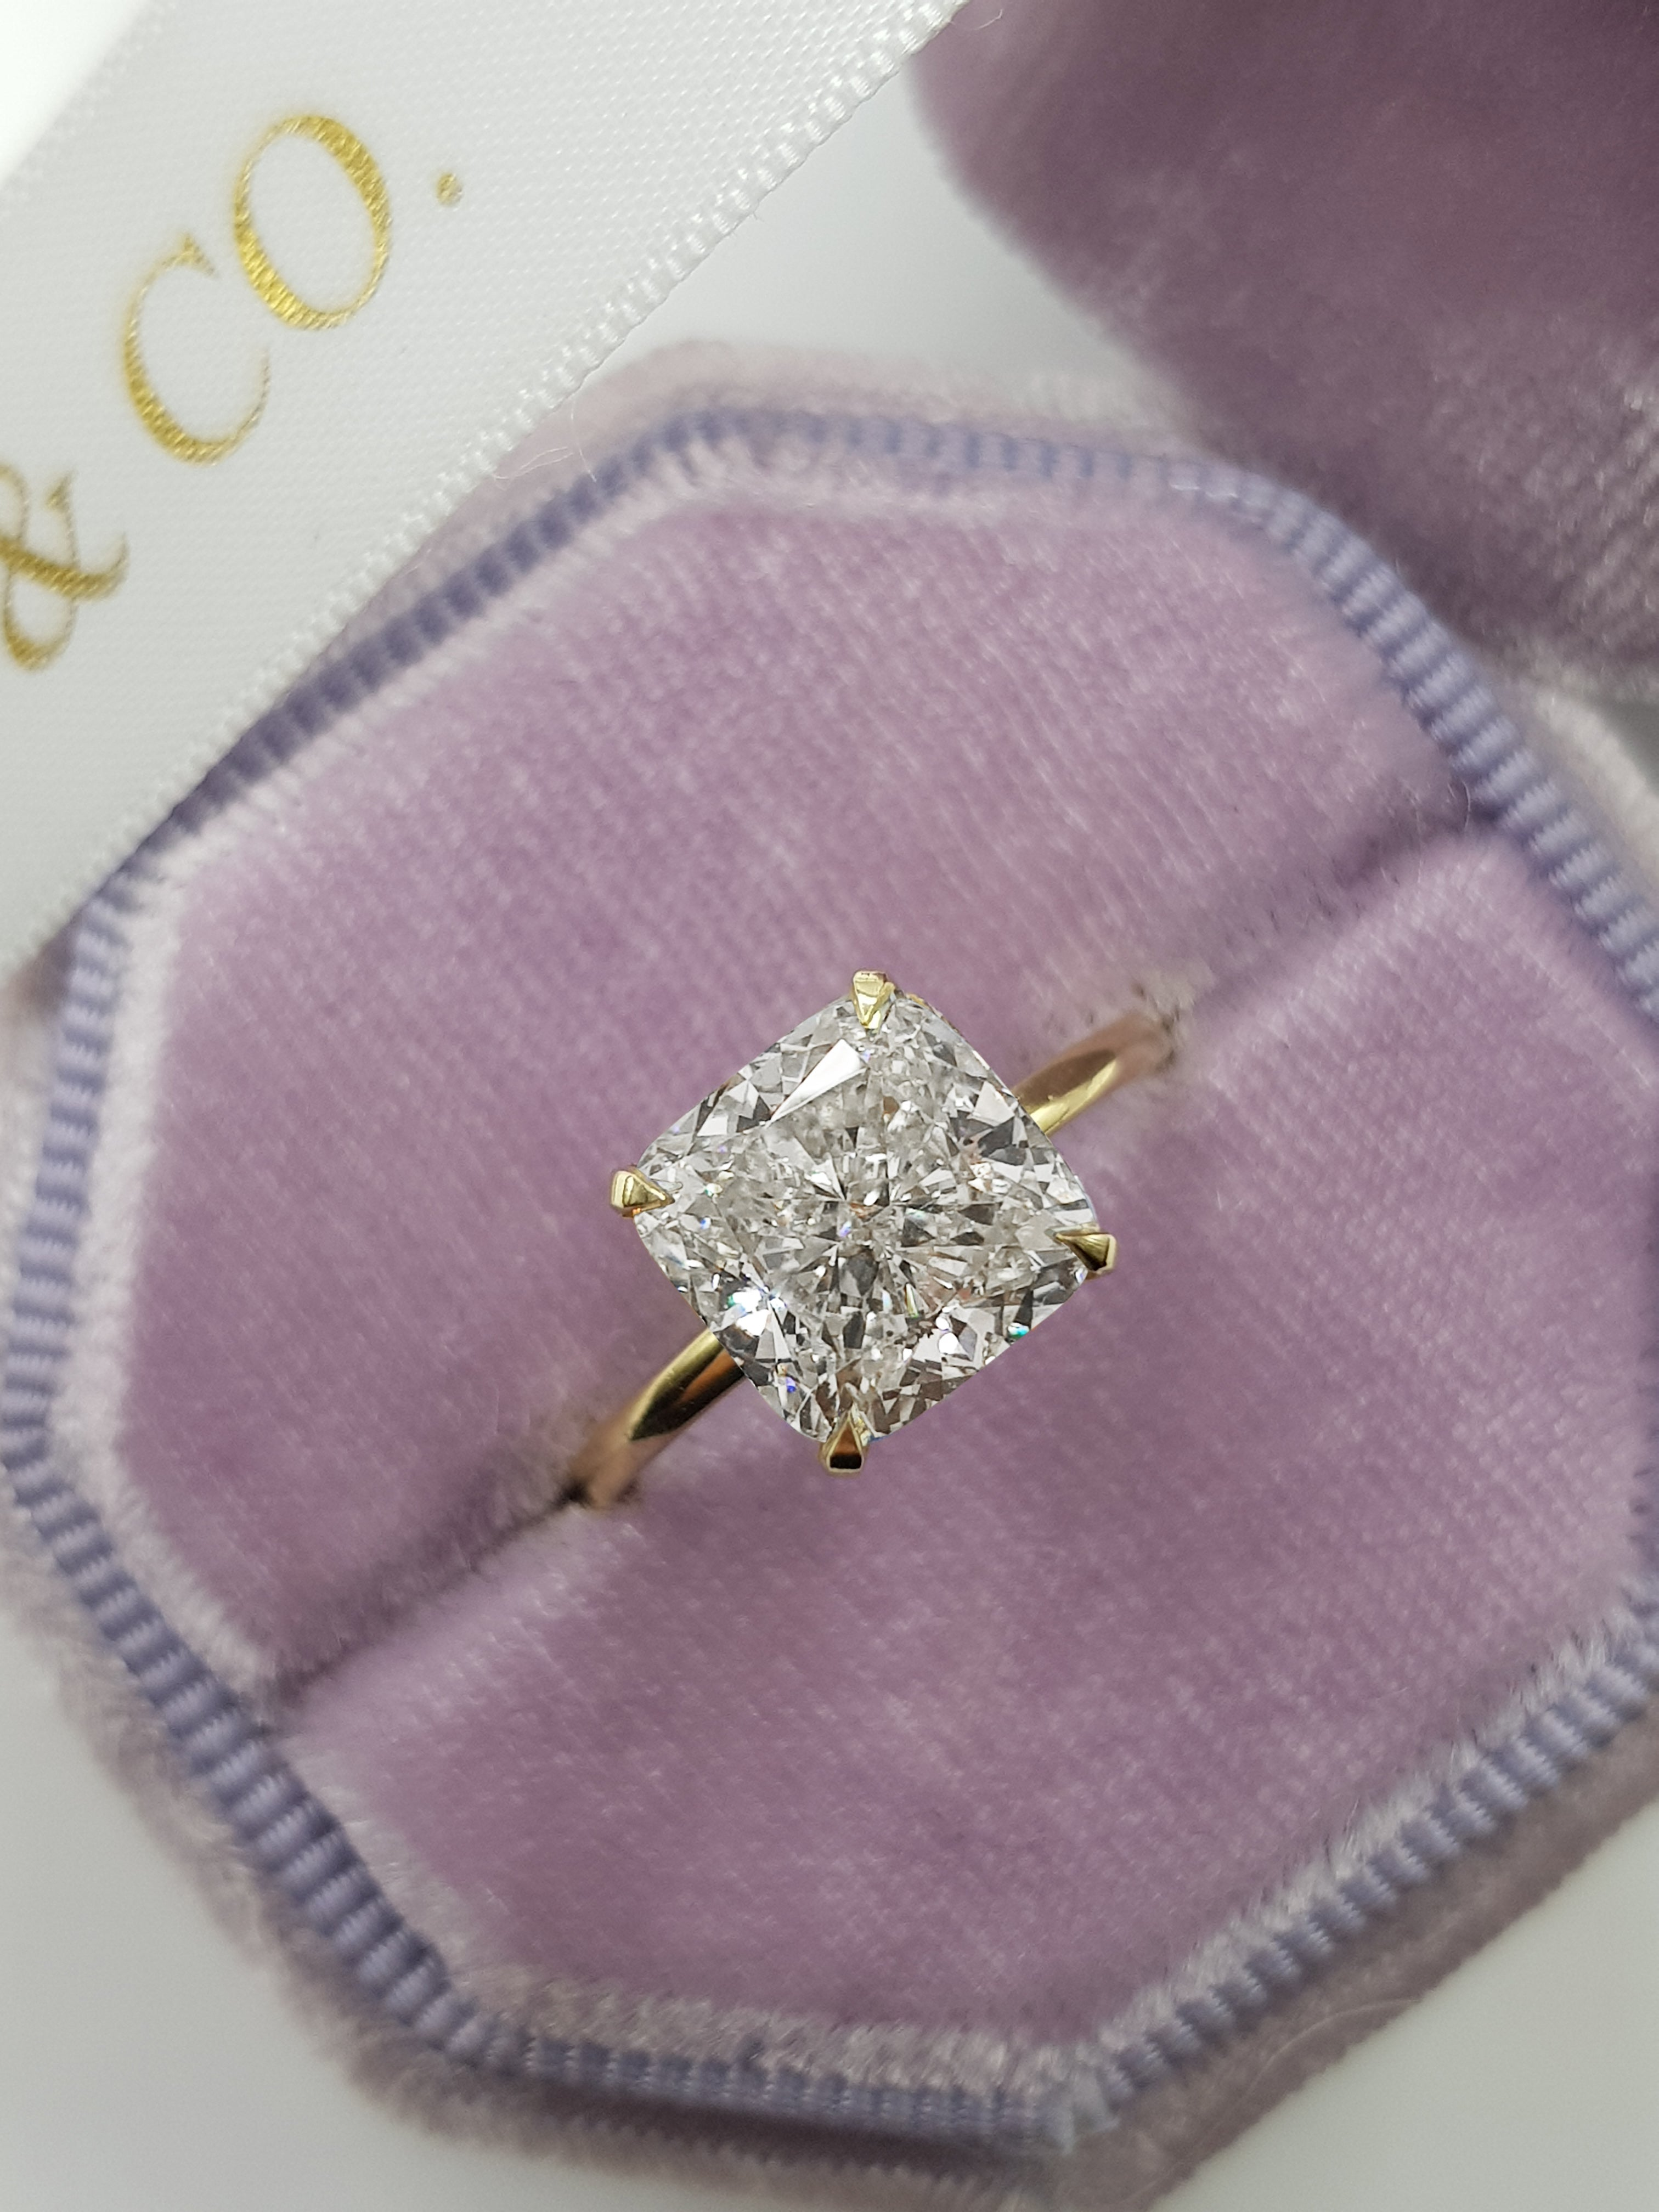 3.31 Carat Cushion Cut Solitaire Diamond Engagement Ring